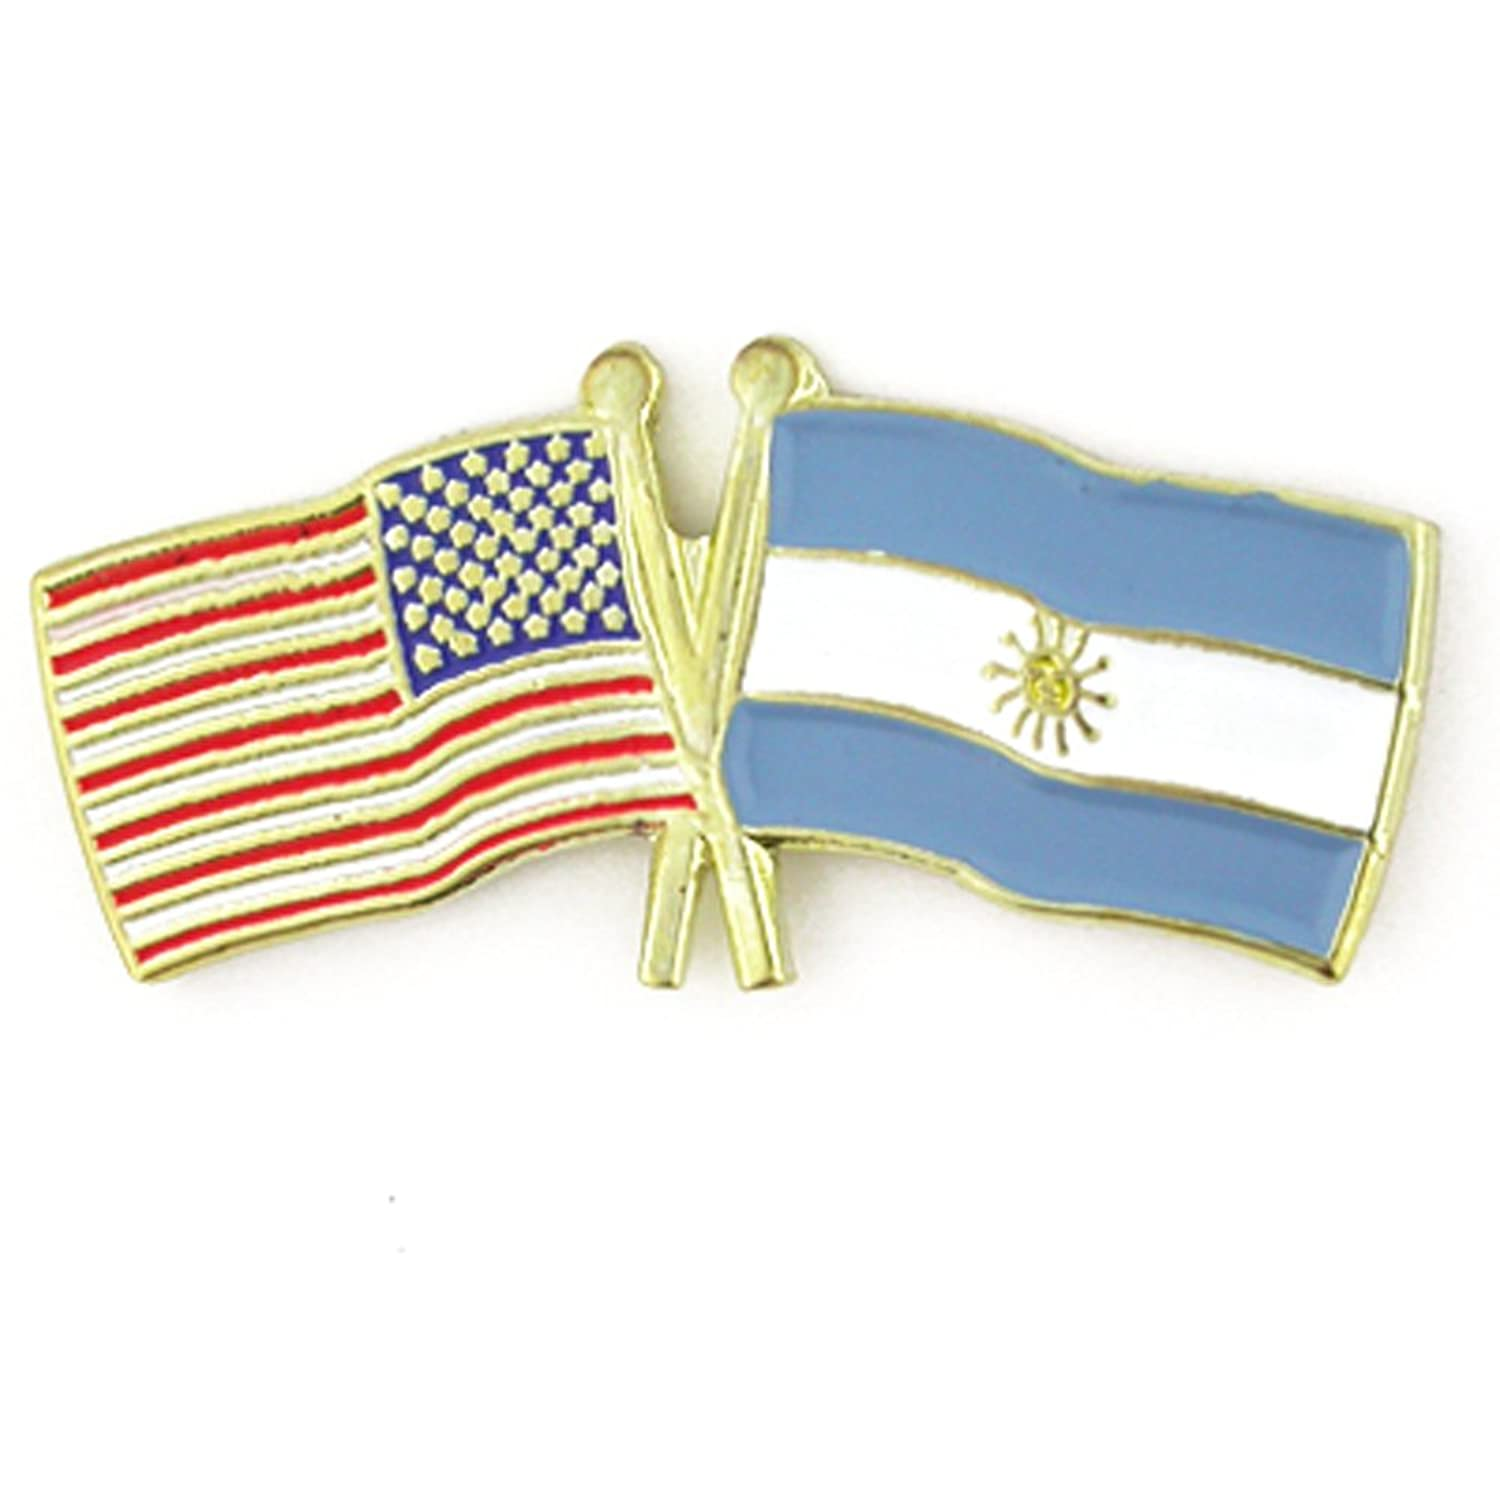 discount PinMart's USA and Argentina Crossed Friendship Flag Enamel Lapel Pin for cheap